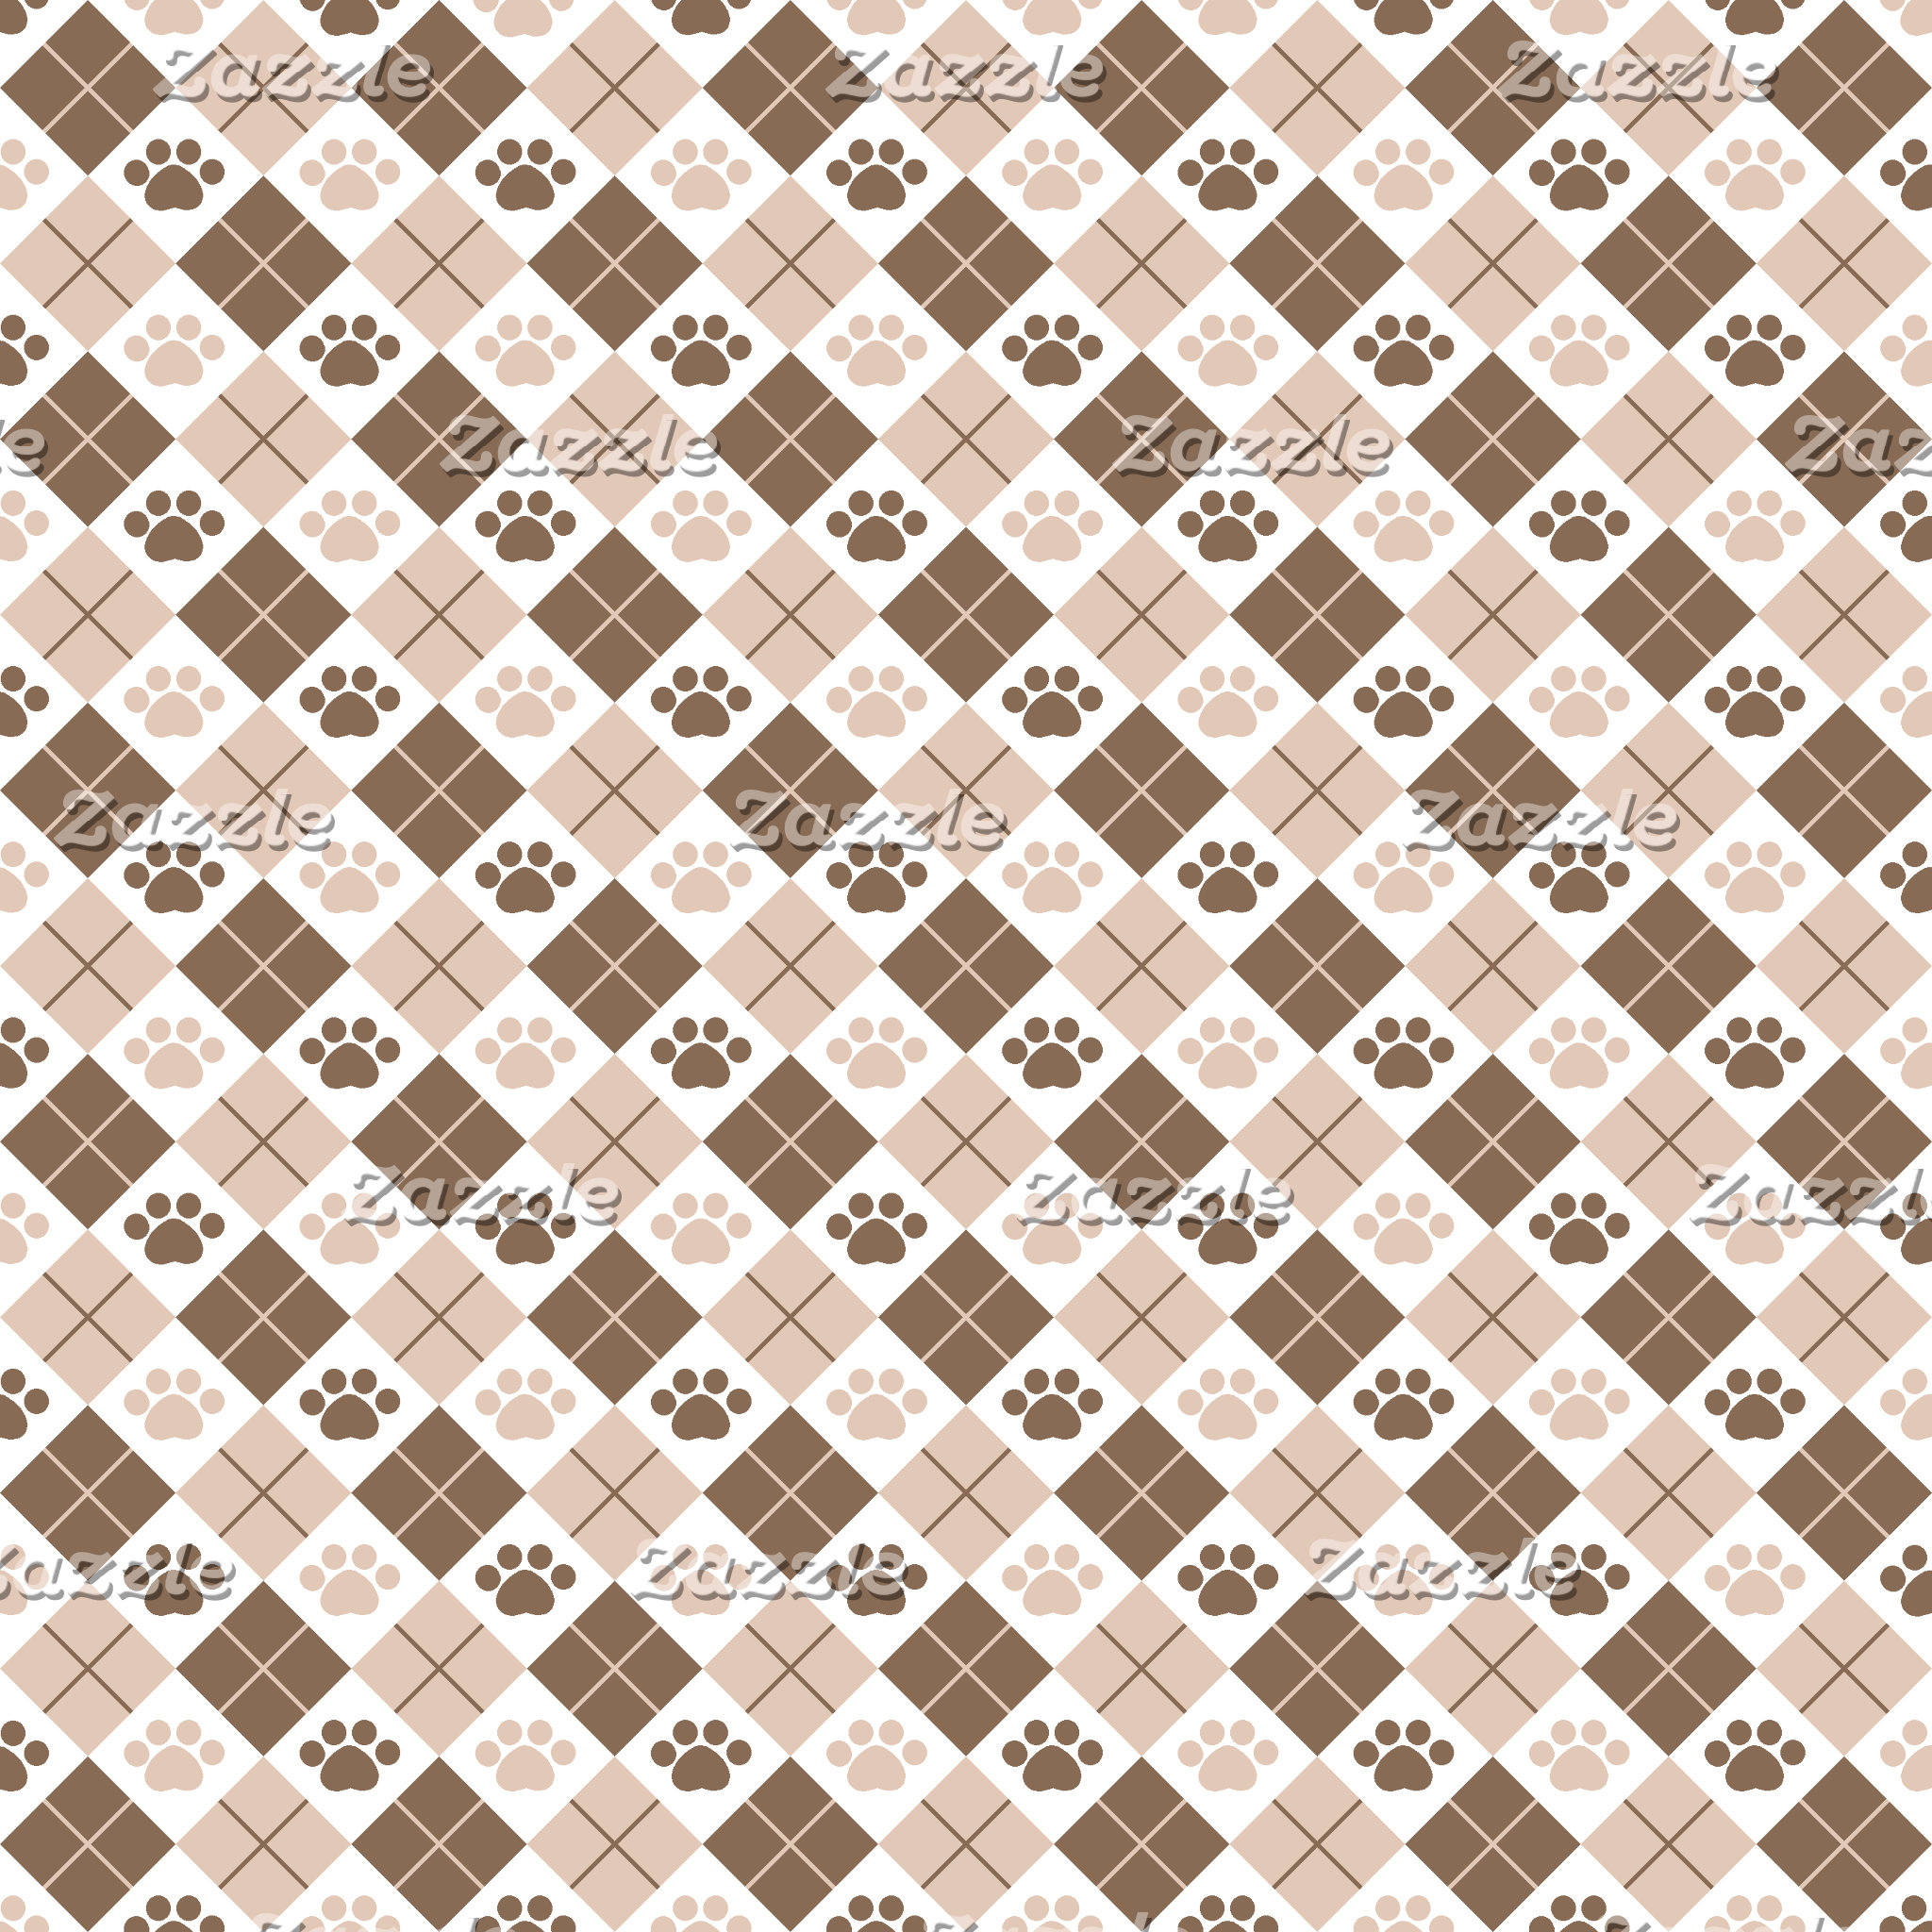 Argyle Paw Print Patterns